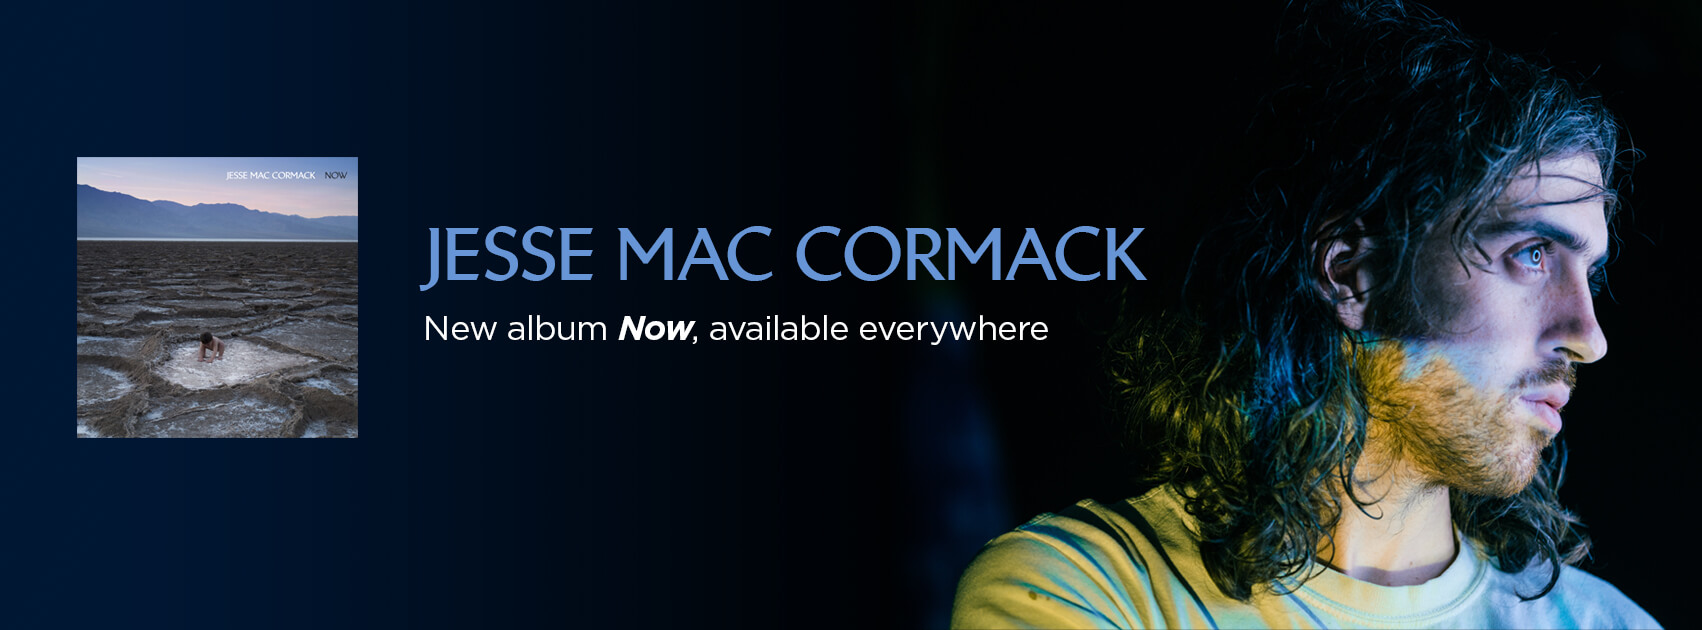 Jesse Mac Cormack Now out now